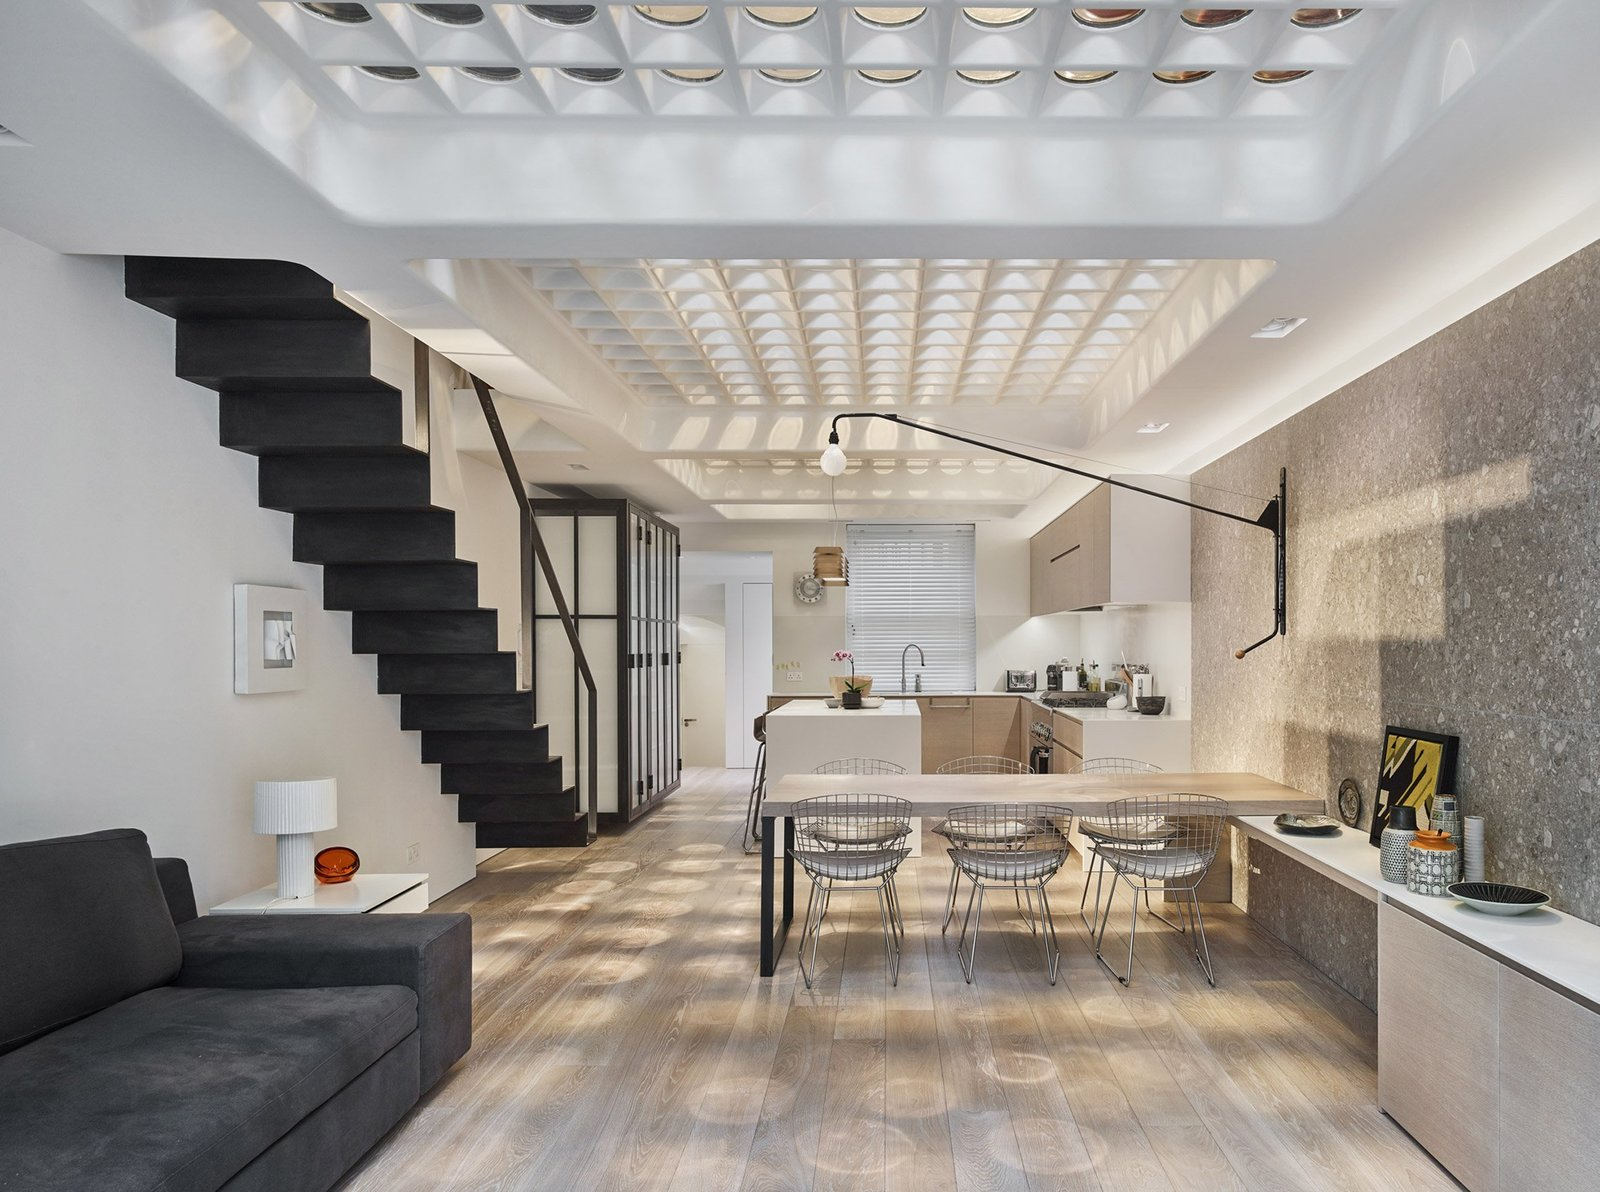 Dining Room  Photo 12 of 12 in Transparent Perforated Circles Bring Light and Movement to This London Terrace House